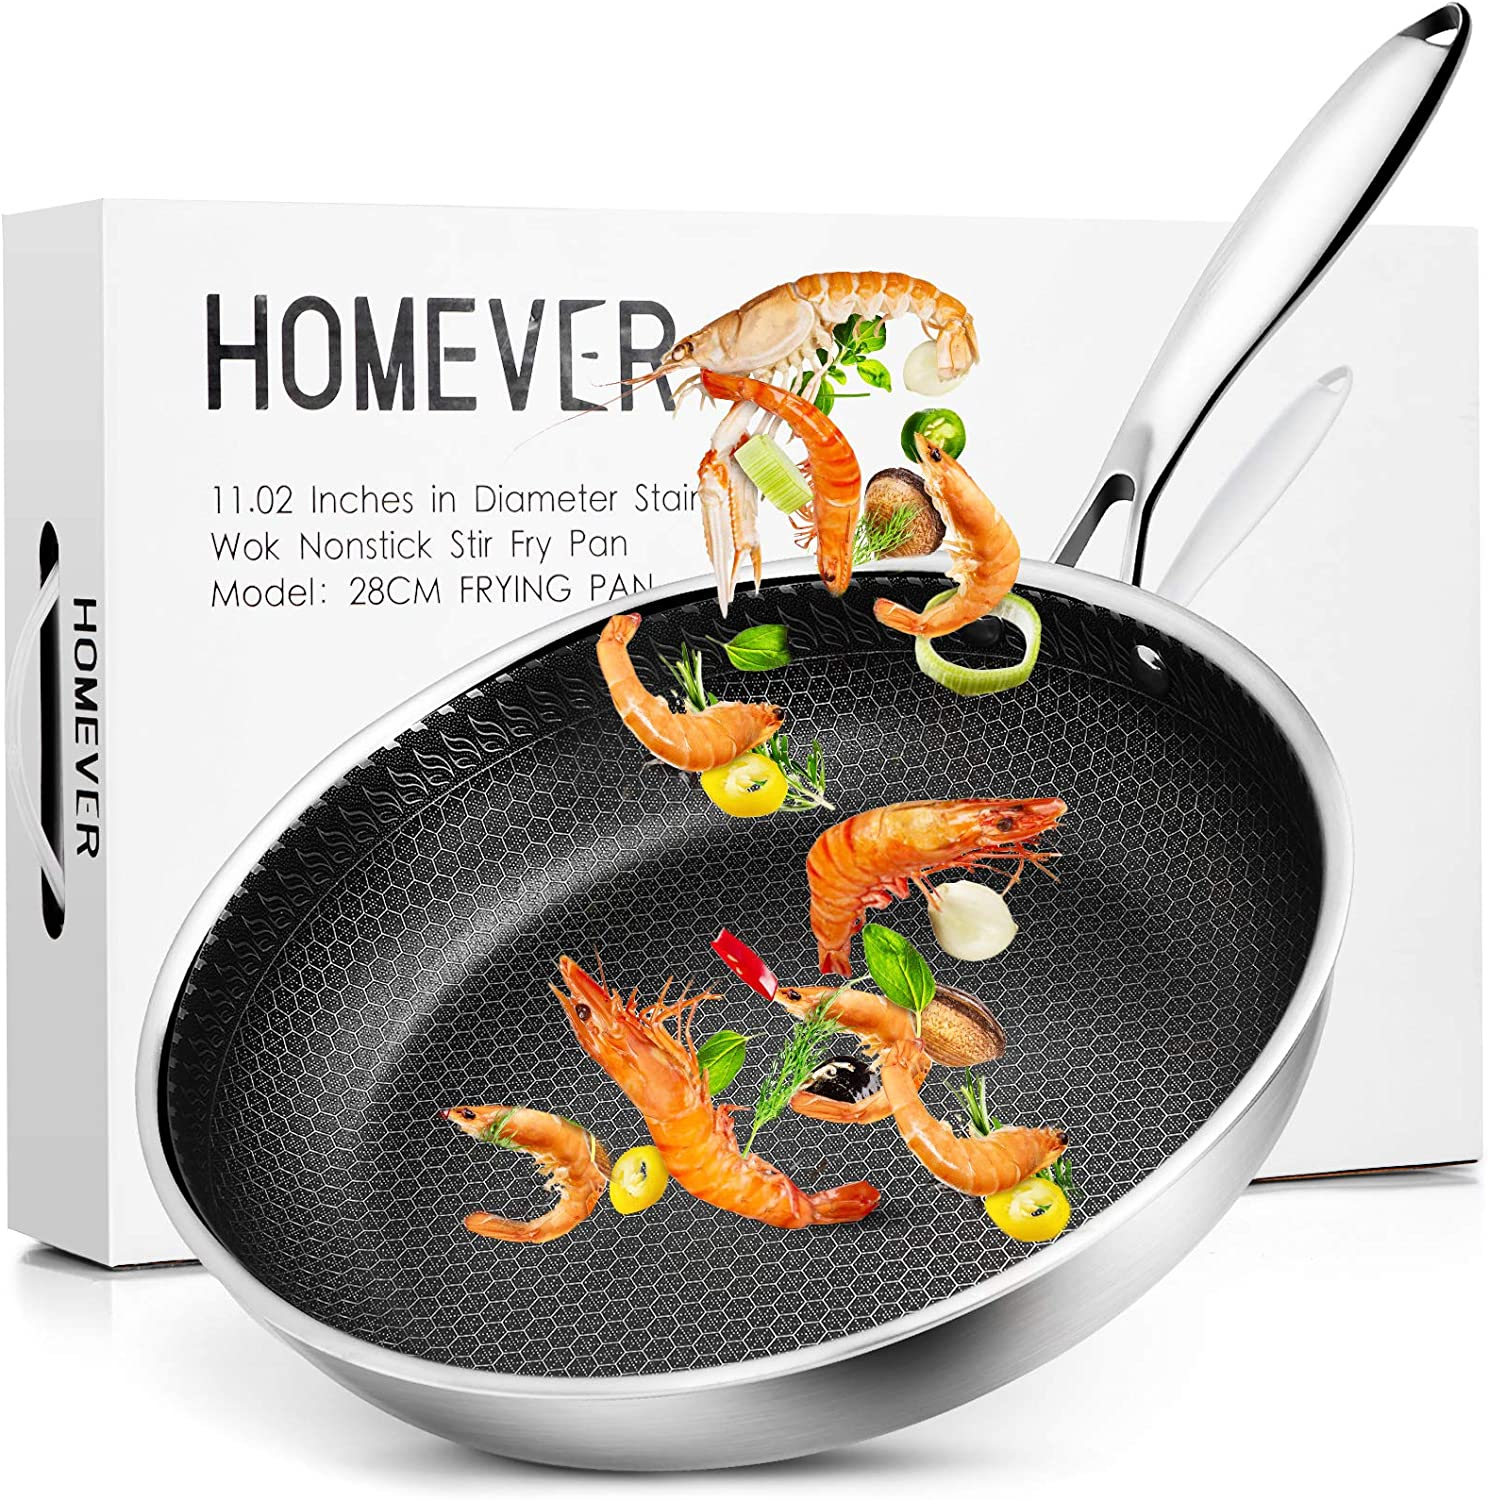 Nonstick Frying Pan, 11 Inch Fry Cookware with Titanium Alloy & Stainless Steel from Germany, Induction Safe Cooker Wok, Full-screen Honeycomb Coating Tri Ply Skillet, PFOA Free - HOMEVER XT1205